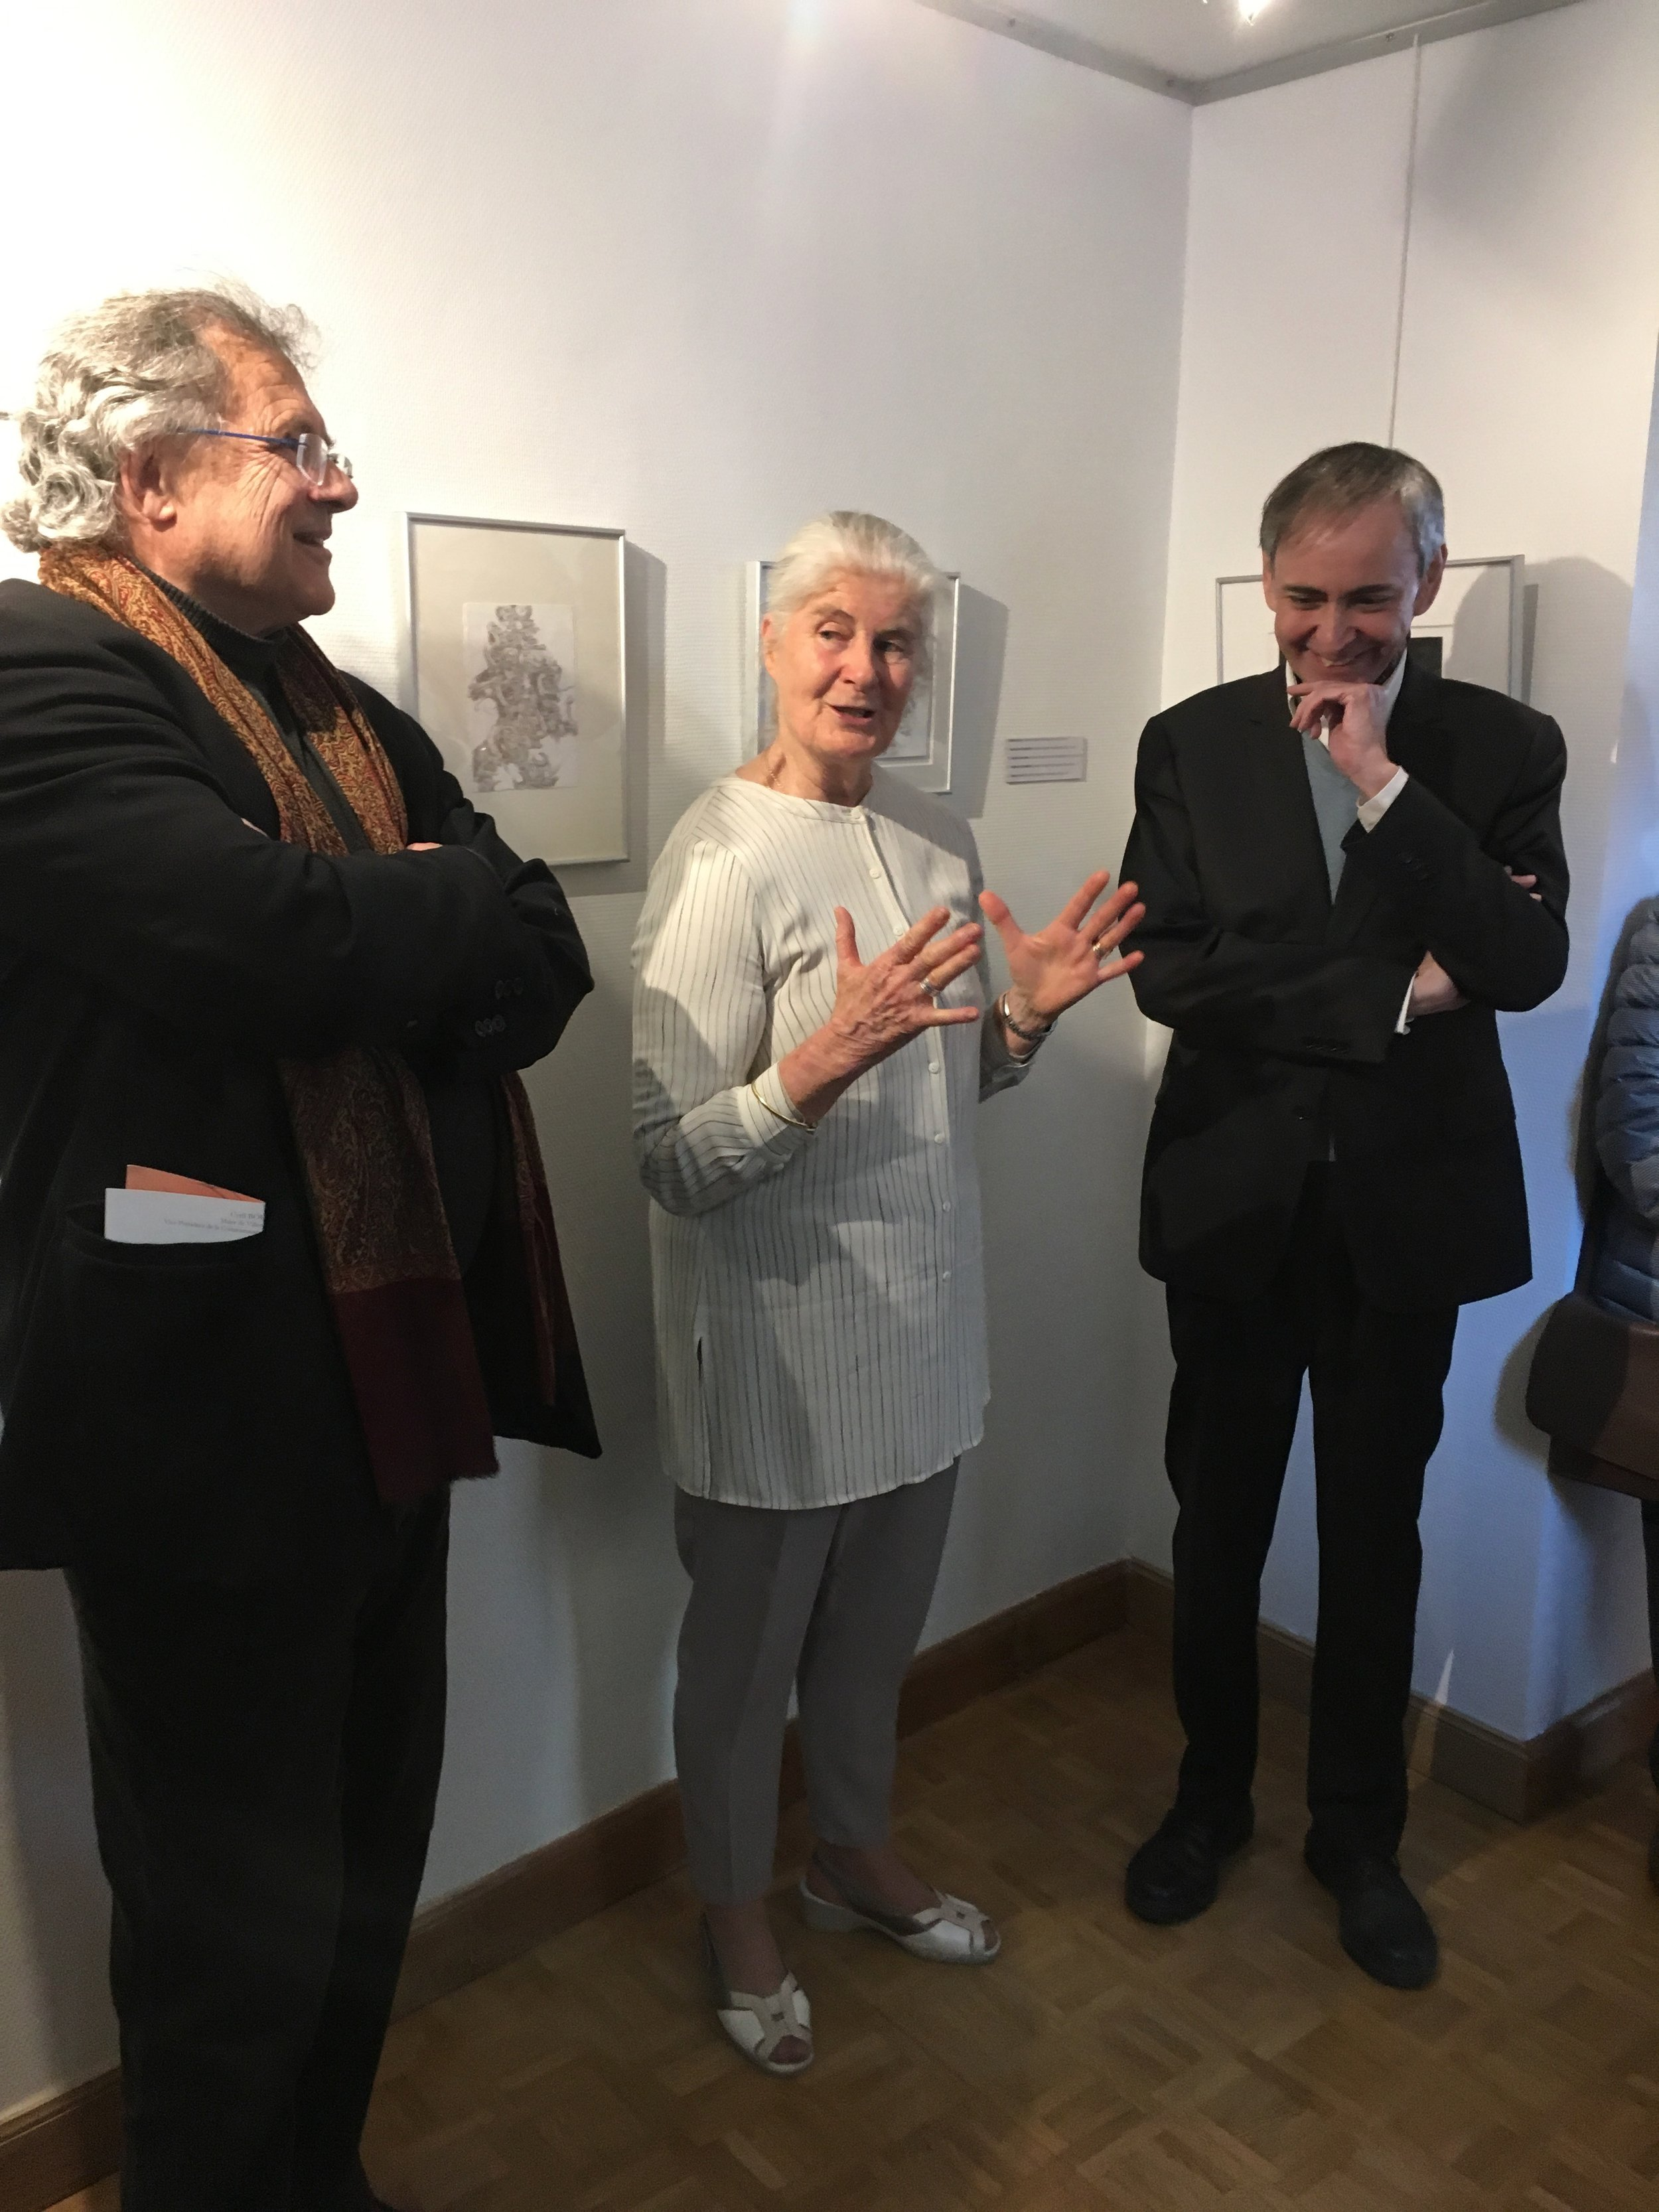 Talking about my drawings and exhibiting at the Musée-Galérie Carnot (Photograph courtesy of Michelle Anderson)